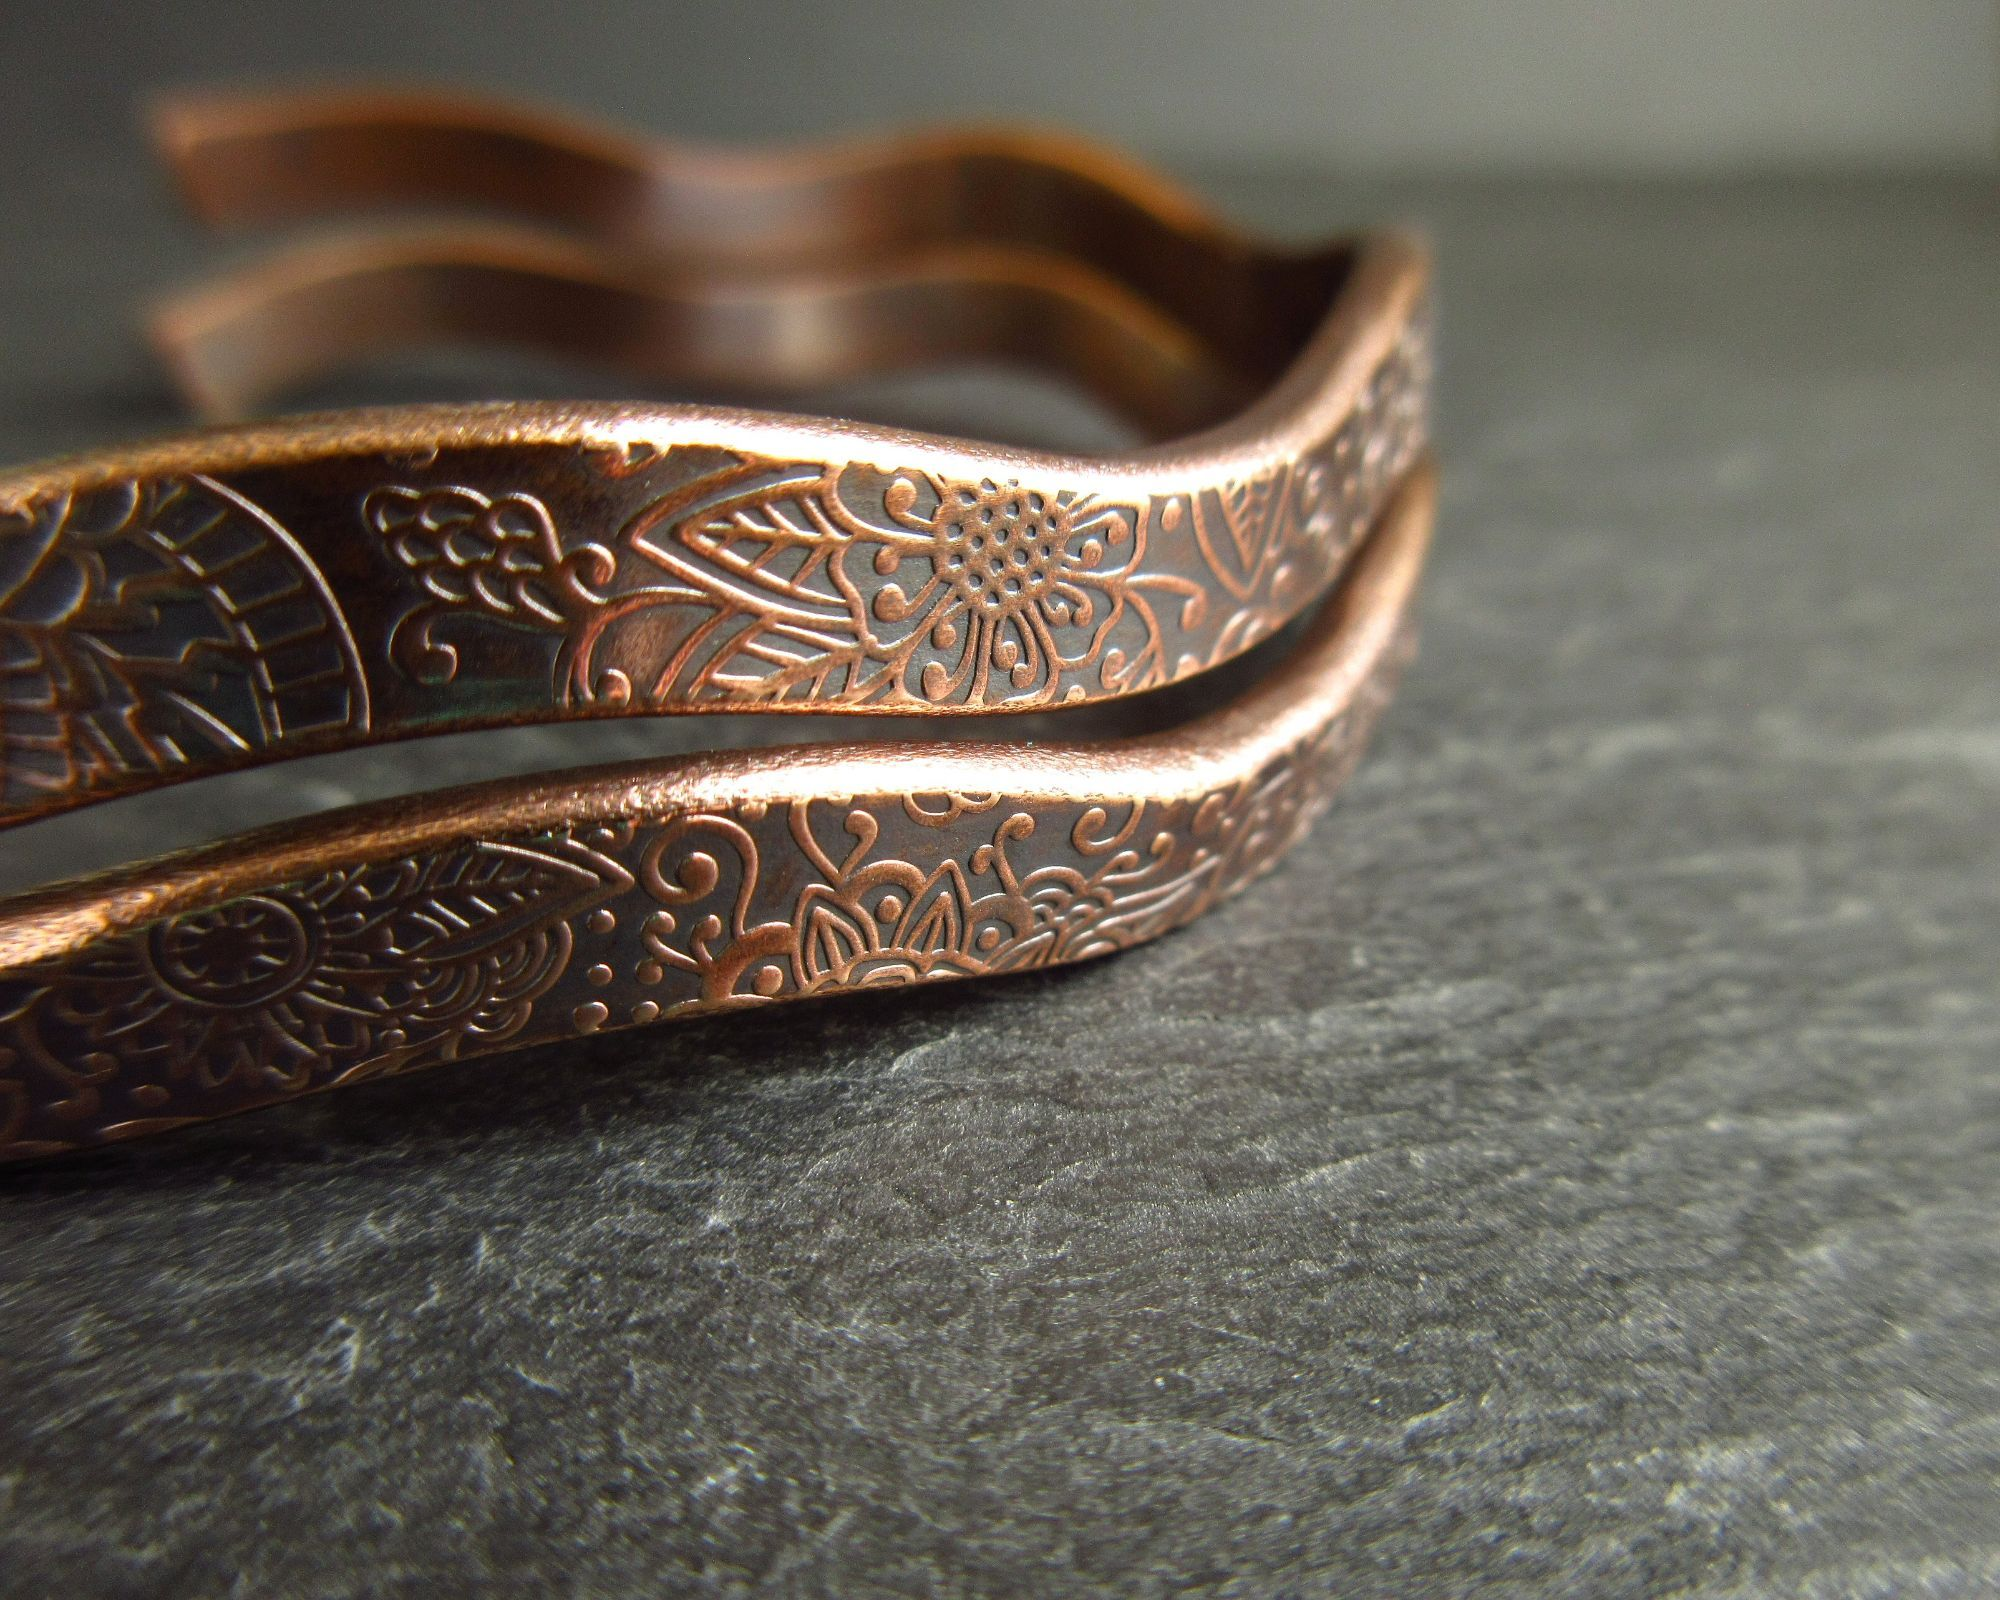 Patterned wavy bronze bangles